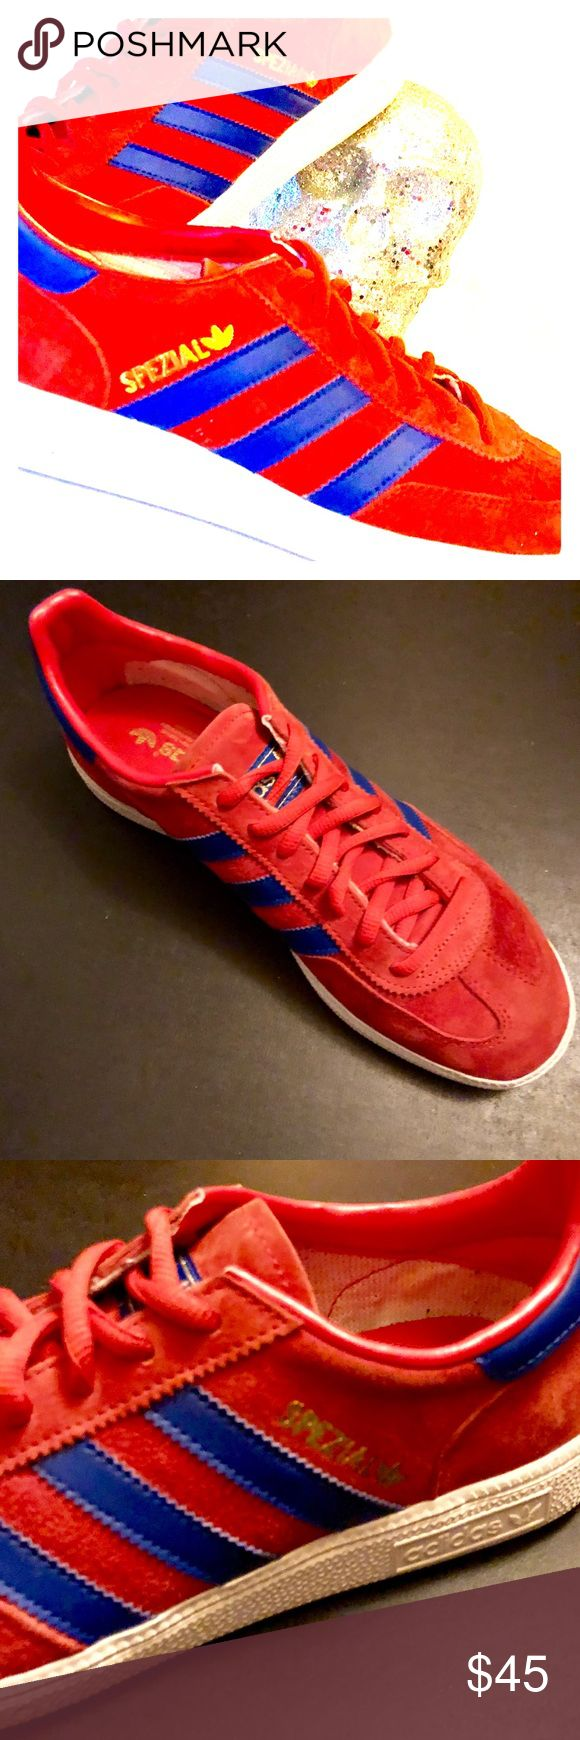 💙Men's Adidas Handball Spezial Sneakers❤️ Men's Sz 9, Trefoil Edition, indoor kicks, EUC & basically in like new condition.   They feature a synthetic lining & the collegiate red pigskin suede upper & the requisite 3 stripes on the side in royal blue. Pivot point rubber outsole. Imported. Going for upwards of $60 on other platforms (see included pic) adidas Shoes Sneakers